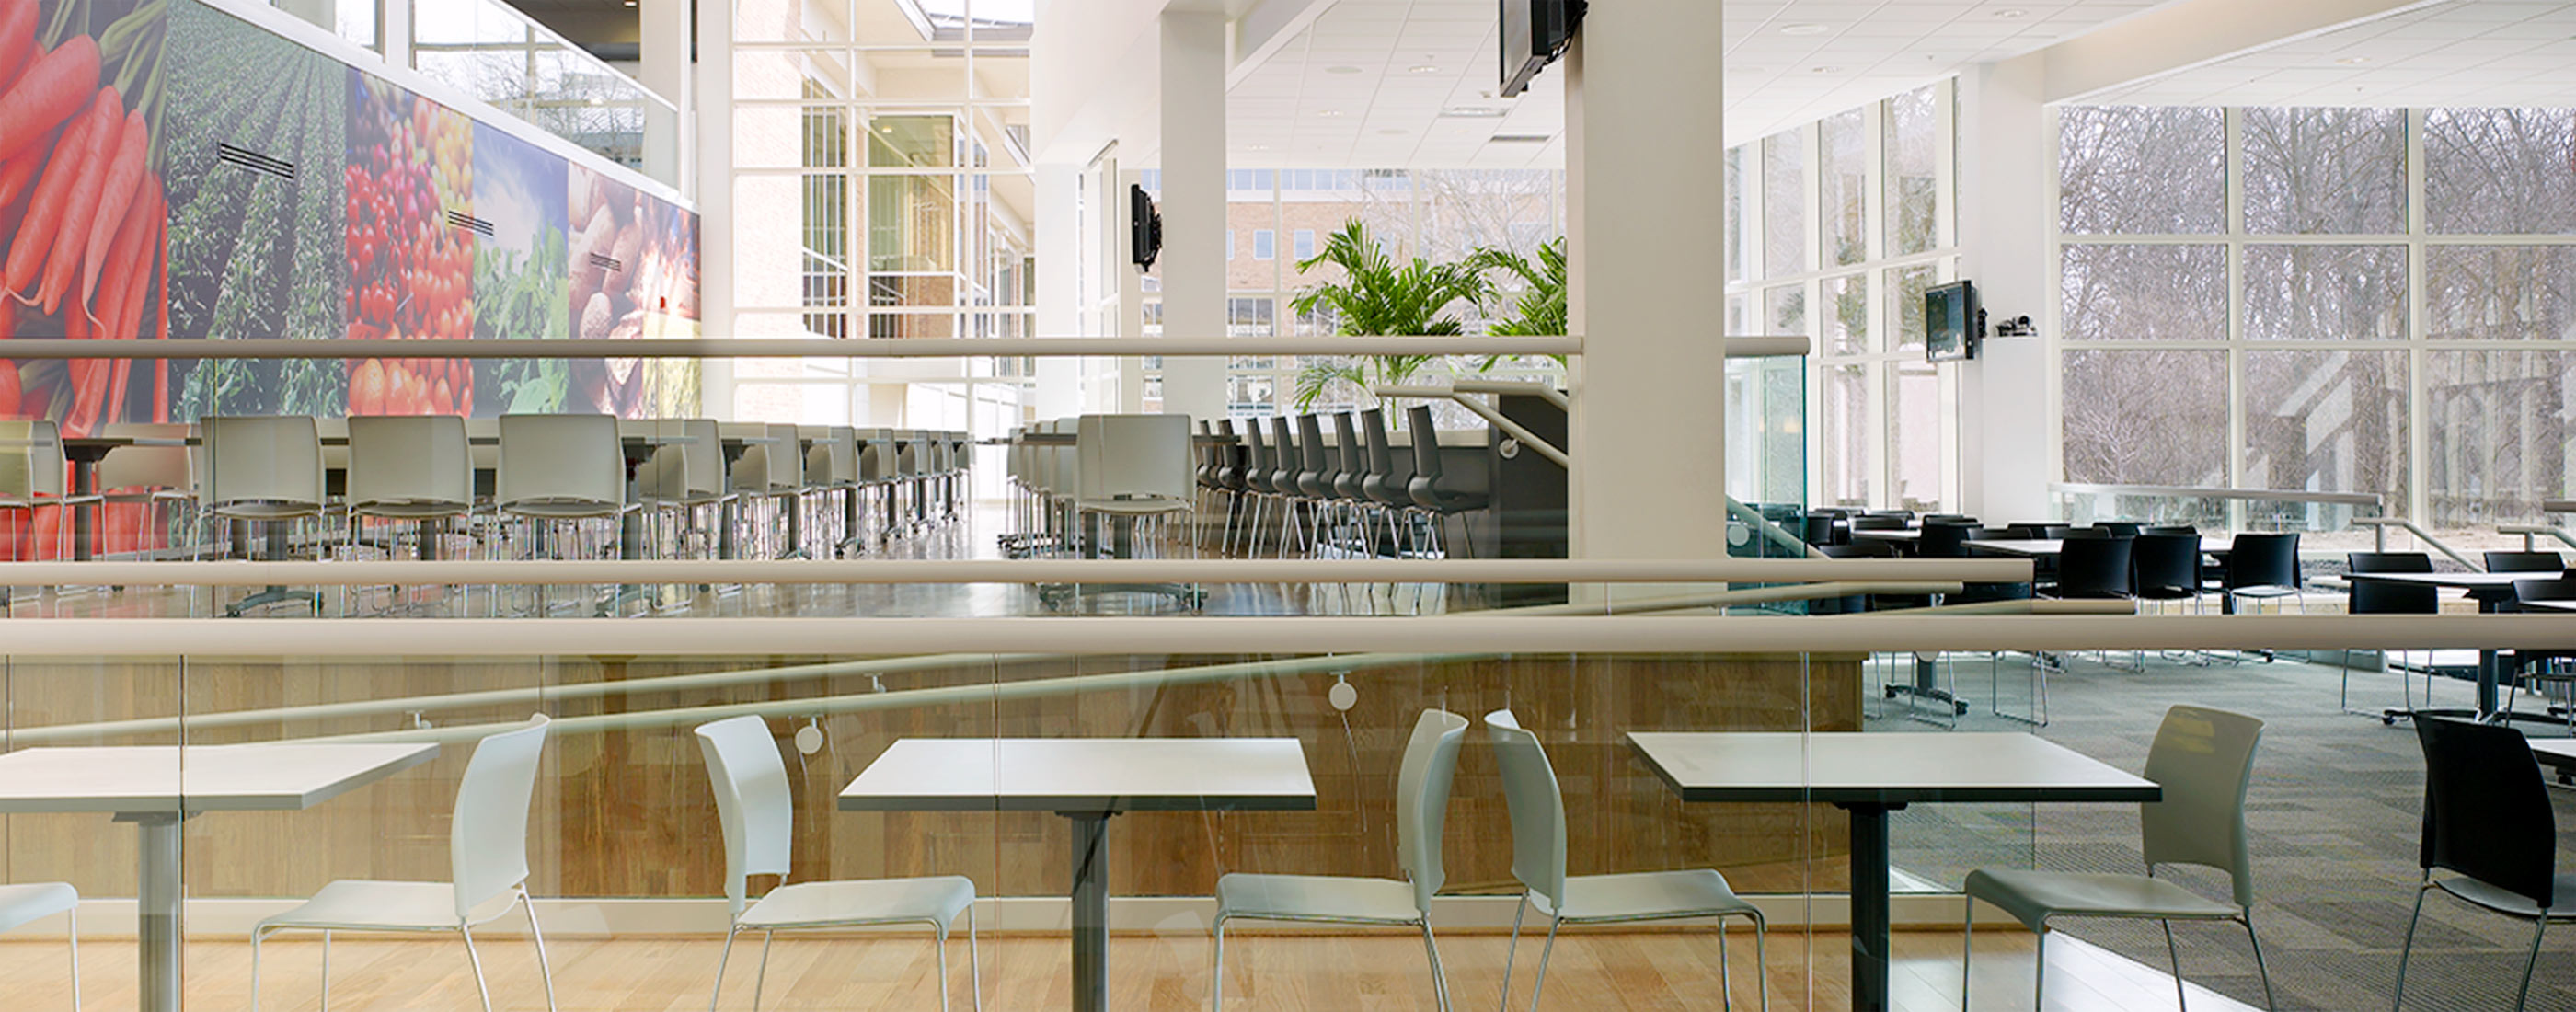 The bright, airy and open cafeteria at Cardinal Health's headquarters, helps engage employees and enhance the corporate culture.